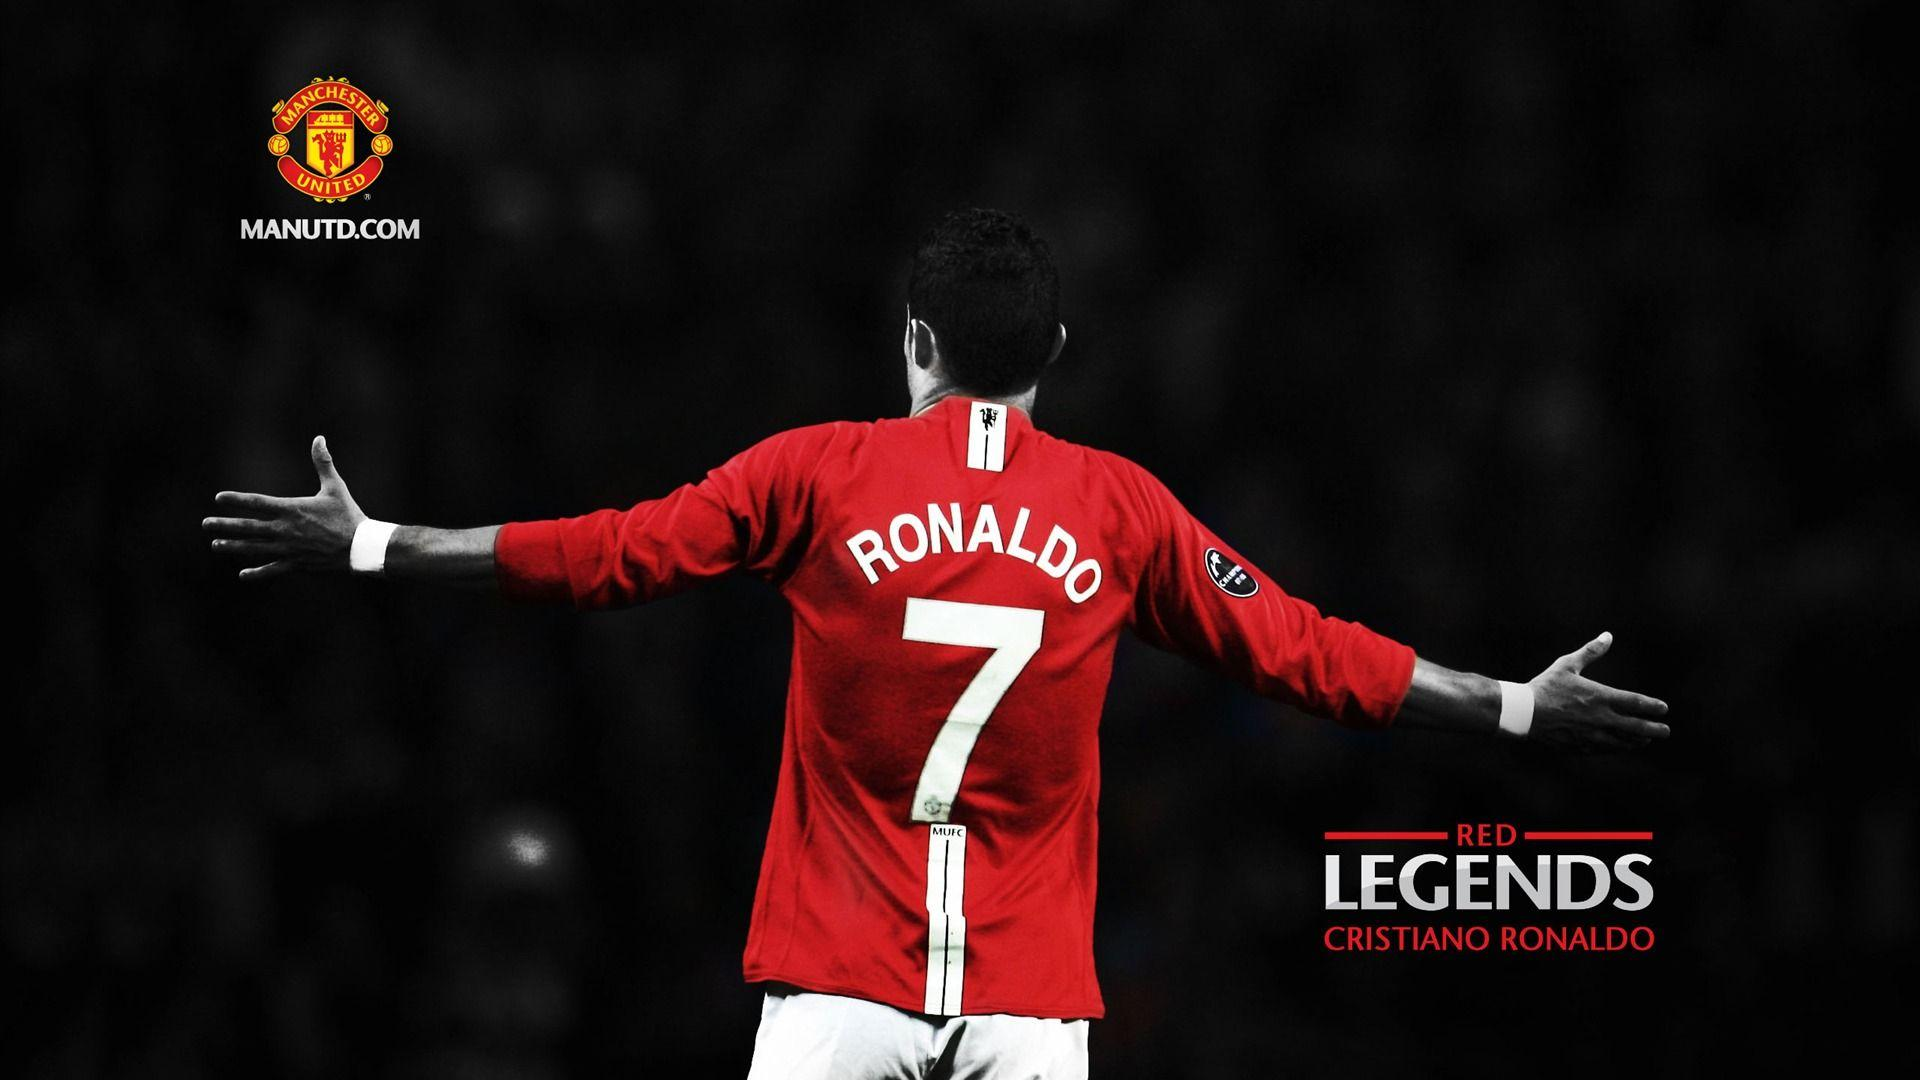 manchester united wallpapers hd wallpaper cave